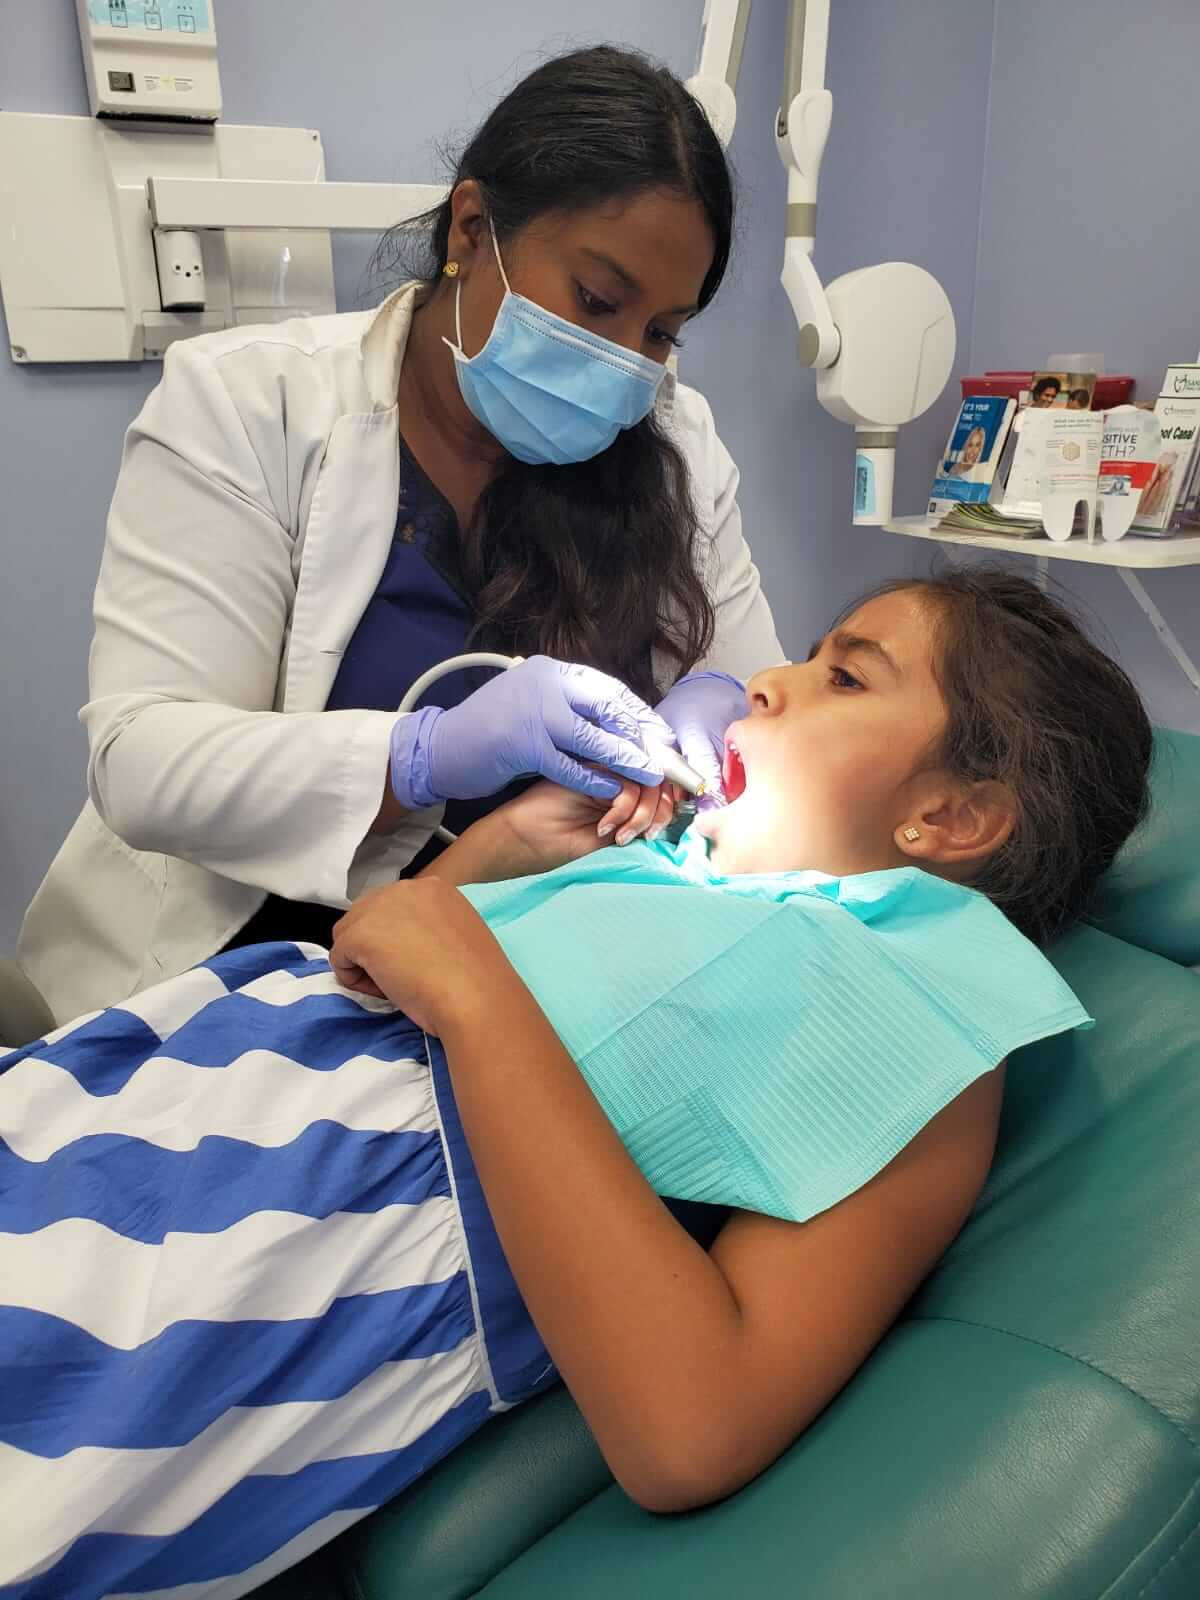 Dr. Pavithra Nantheeswarar, a dentist, provides dental services for a young patient, an adolescent girl at a family dental clinic.